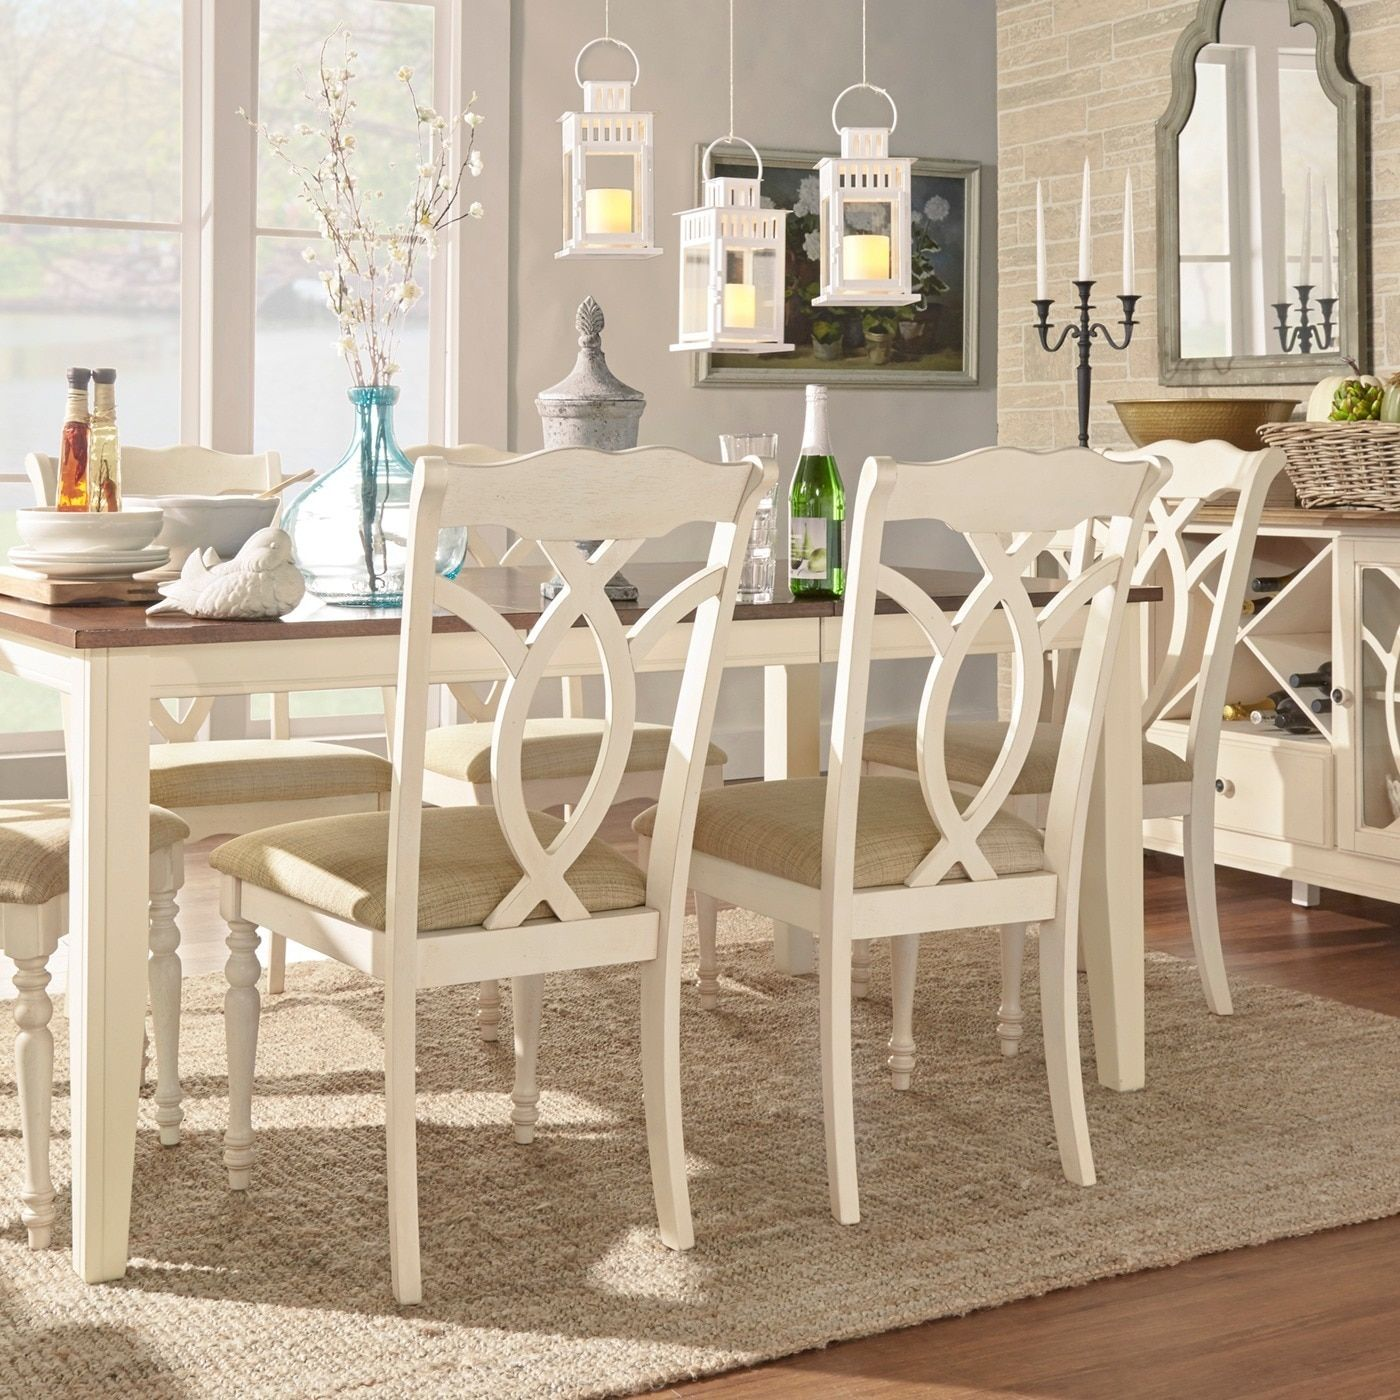 Dining Room Chairs Under 300 Make Mealtimes More Inviting With Comfortable And Attractive Kitchen Free Shipping On Orders Over